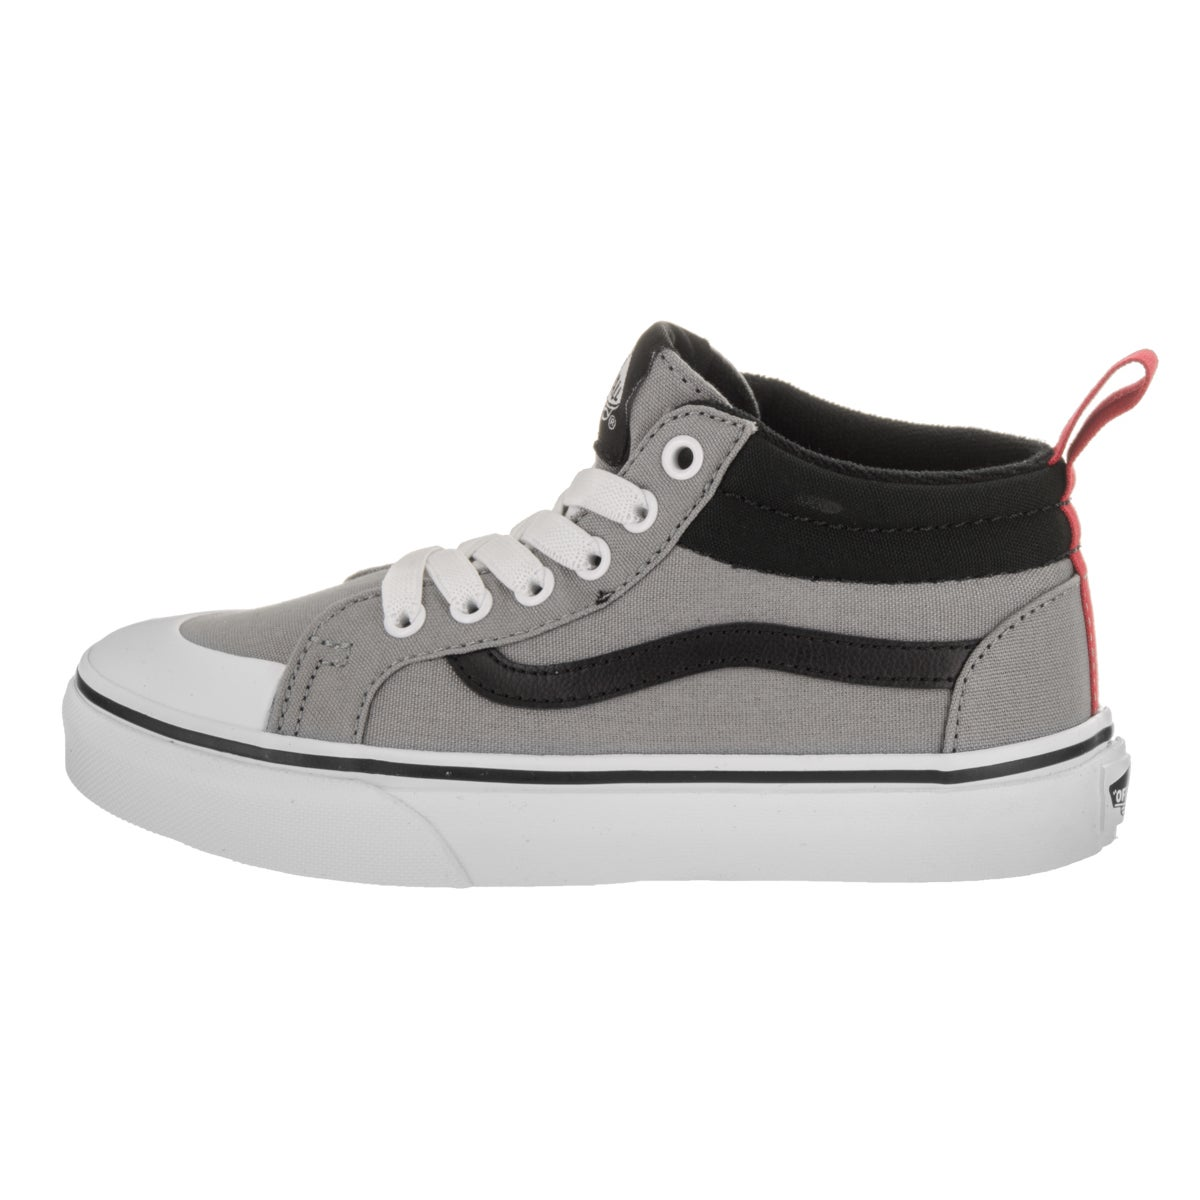 34ed7891ebeb Shop Vans Kids Racer Mid Canvas Skate Shoes - Free Shipping On ...